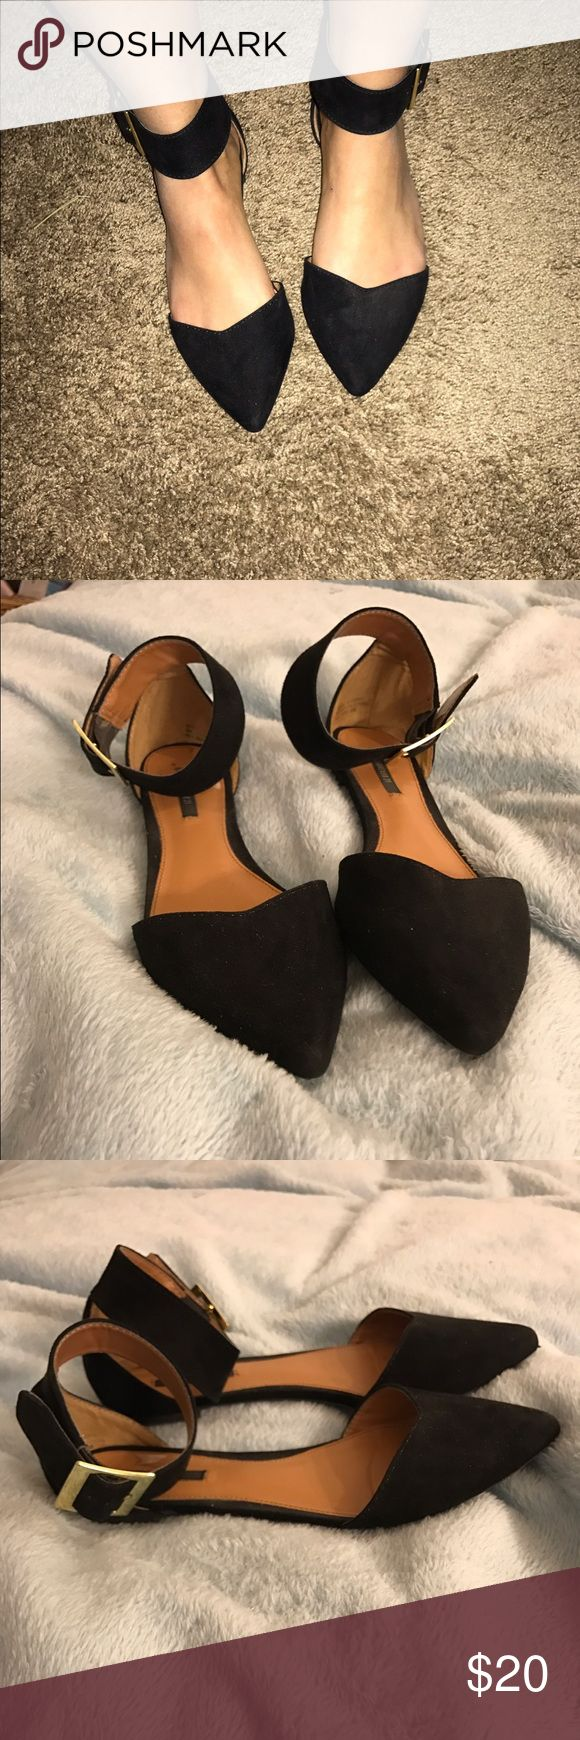 Closed toe flats Cute black closed toe flats very professional Forever 21 Shoes Flats & Loafers